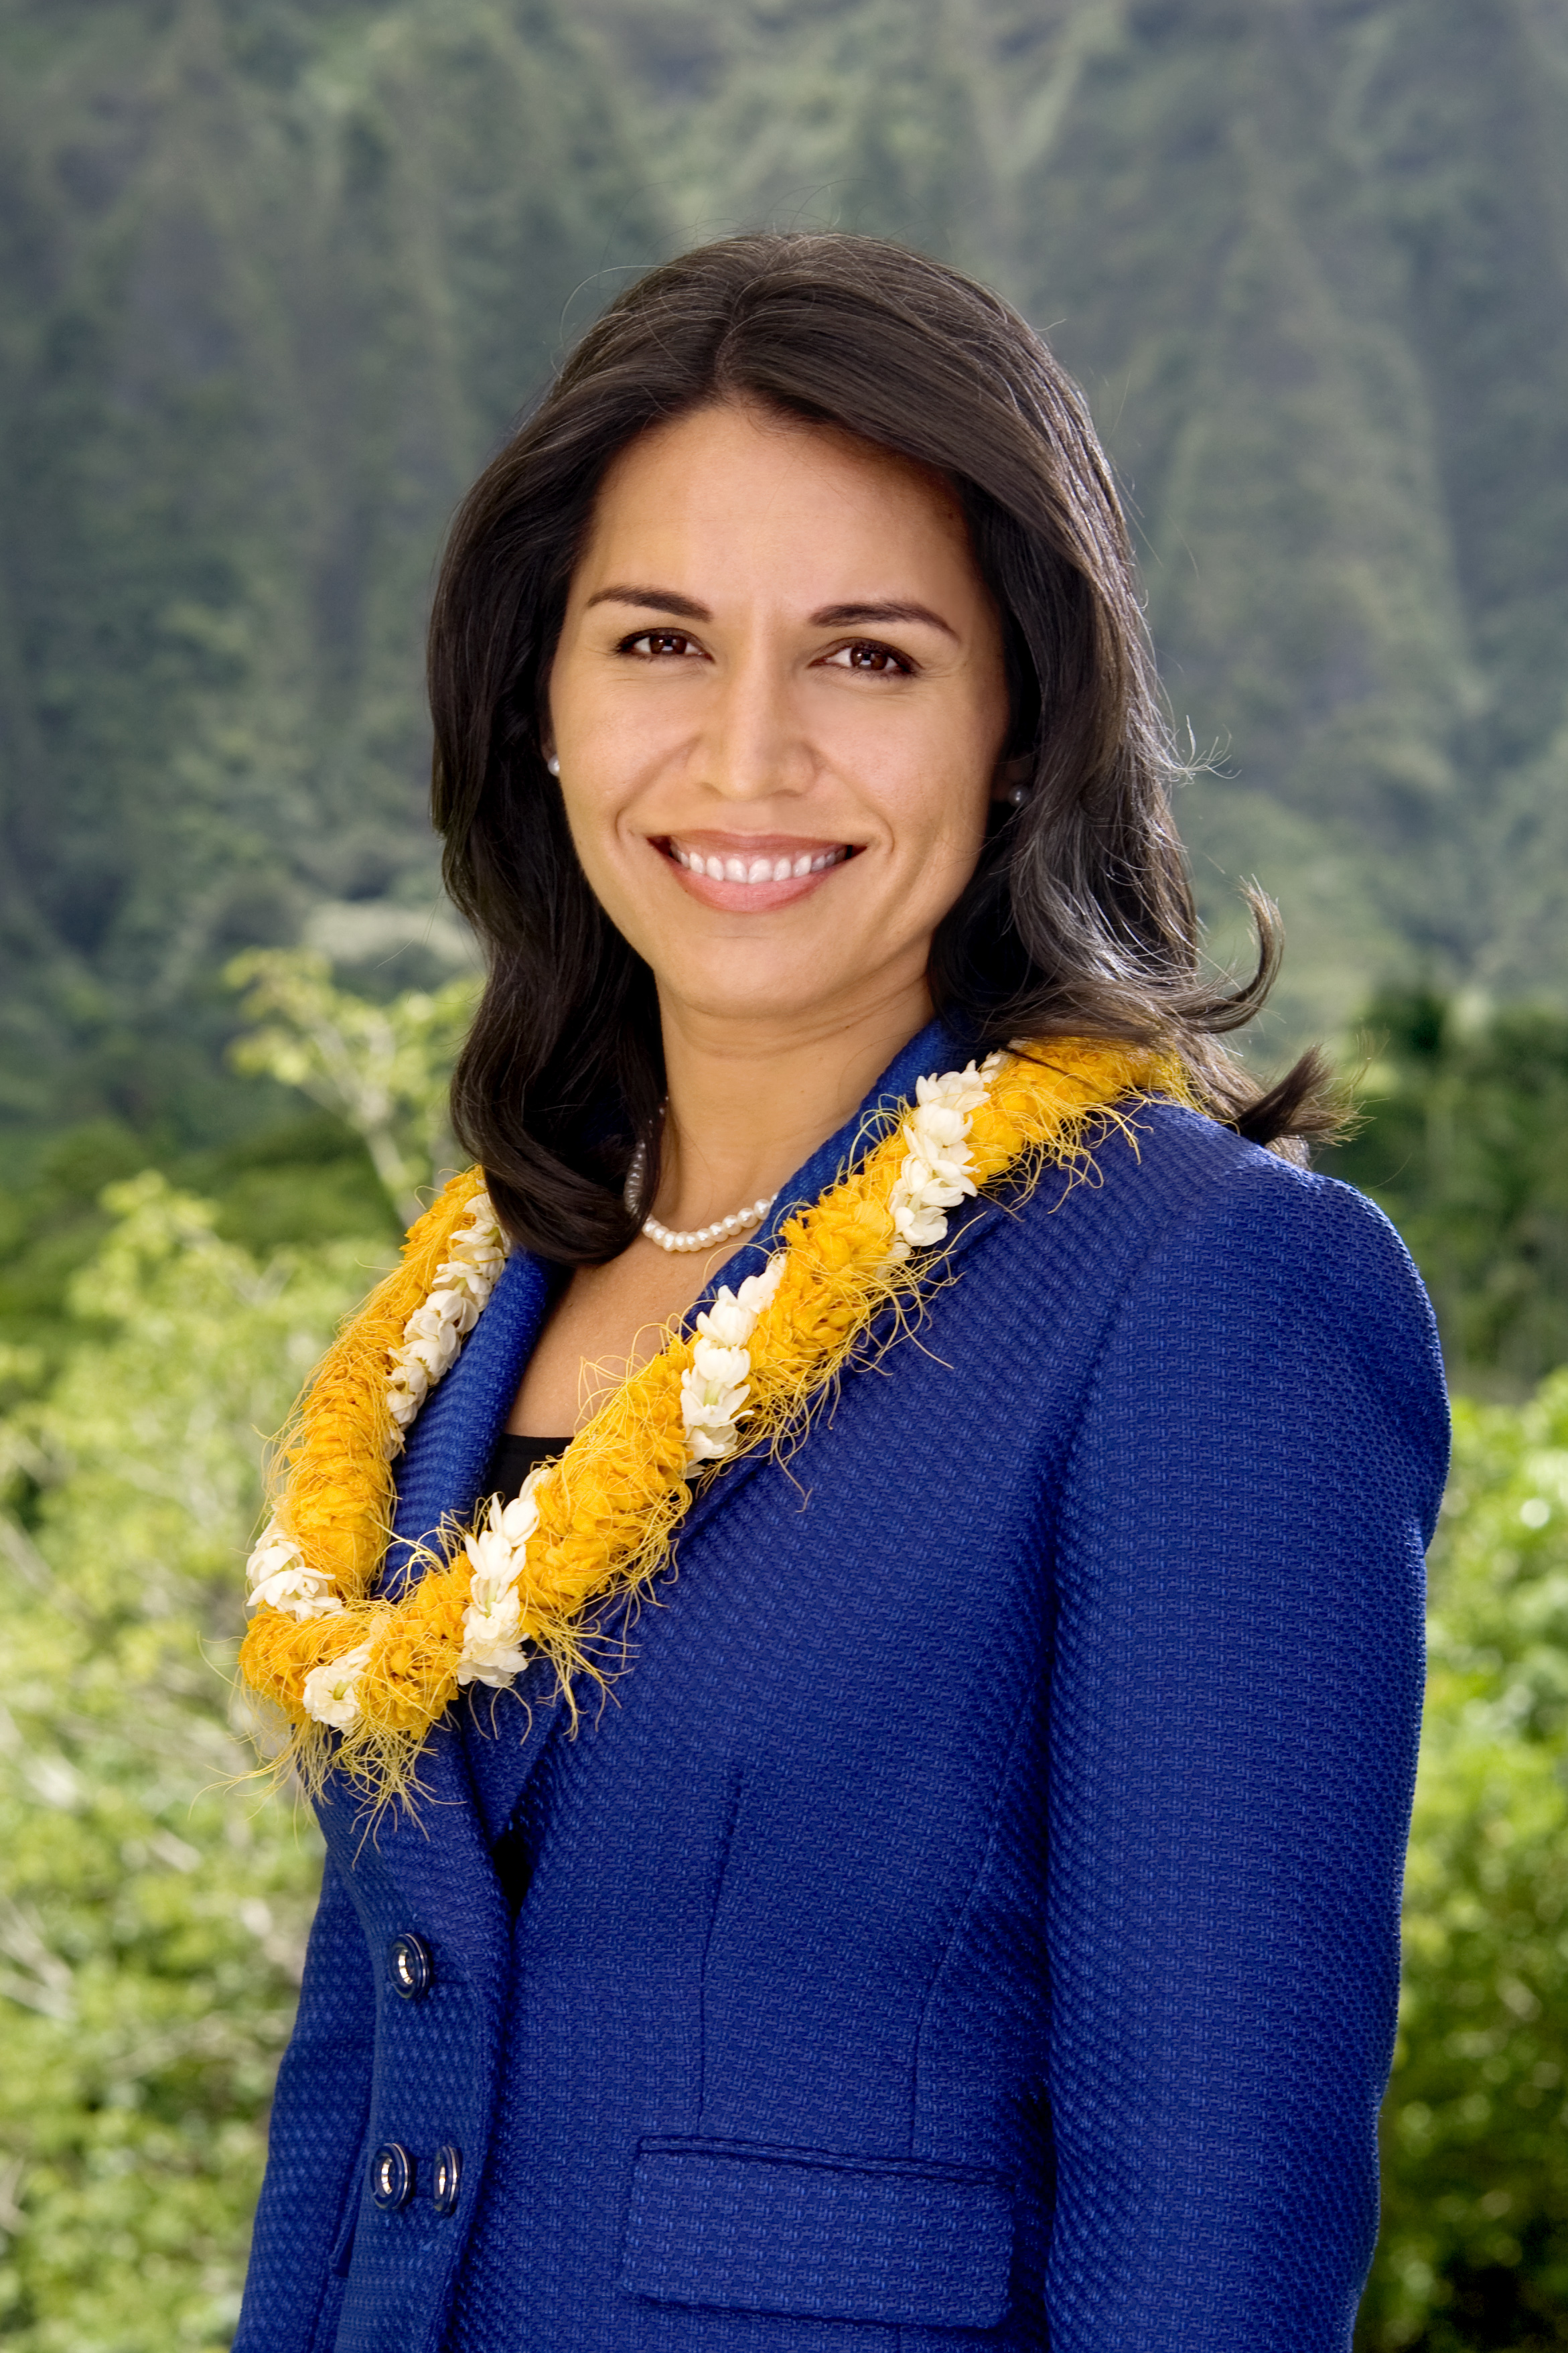 Tulsi Gabbard Official Photo